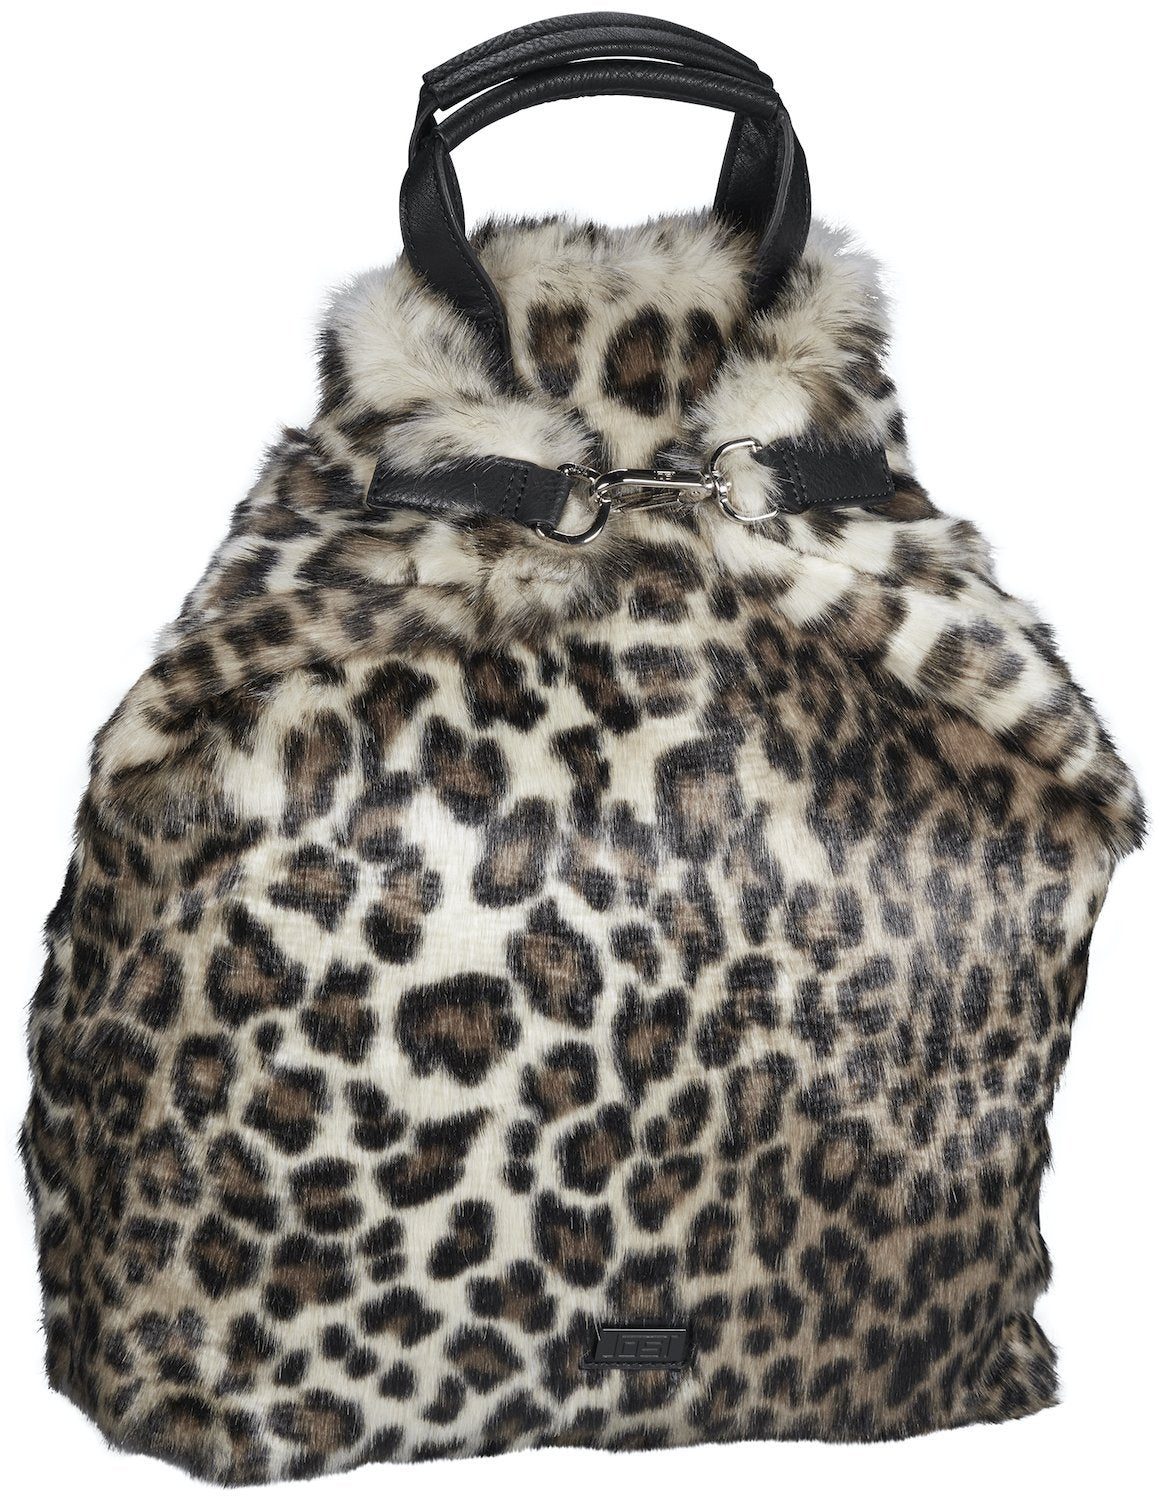 Jost Leo / Faux Fur - X-Change Bag S